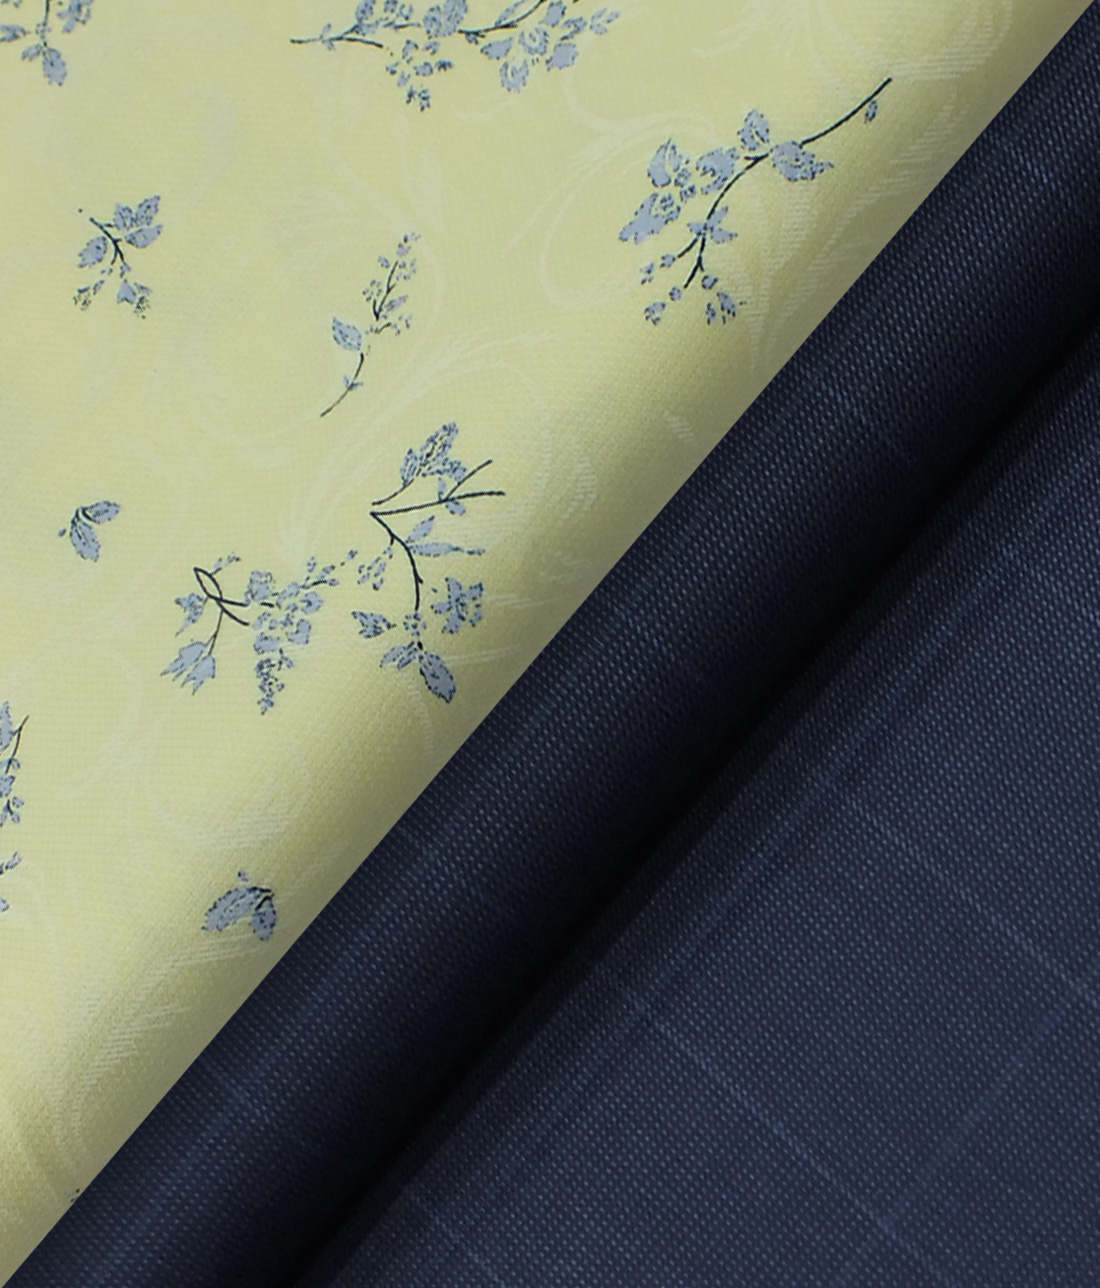 Reid & Taylor Denim Blue Checks Trouser Fabric With Monza Light Yellow Floral Printed Shirt Fabric (Unstitched)